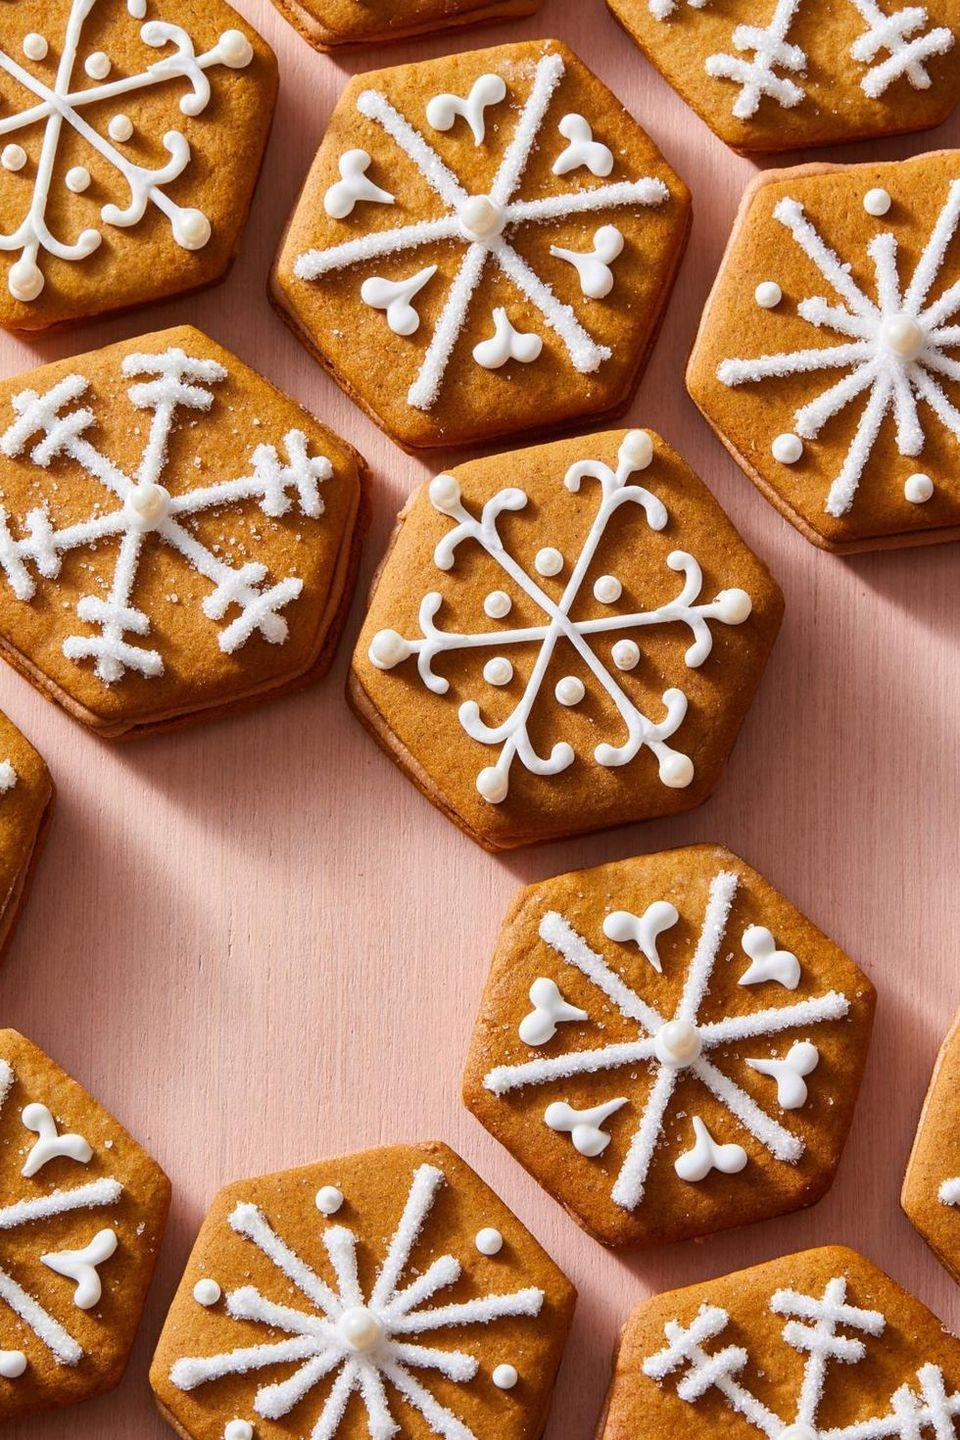 """<p>Upgrade the holiday classic by sandwiching gingerbread cookies with decadent milk chocolate frosting.</p><p><em><a href=""""https://www.goodhousekeeping.com/food-recipes/dessert/a29655477/gingerbread-sandwich-cookies-recipe/"""" rel=""""nofollow noopener"""" target=""""_blank"""" data-ylk=""""slk:Get the recipe for Gingerbread Sandwich Cookies »"""" class=""""link rapid-noclick-resp"""">Get the recipe for Gingerbread Sandwich Cookies »</a></em> </p>"""